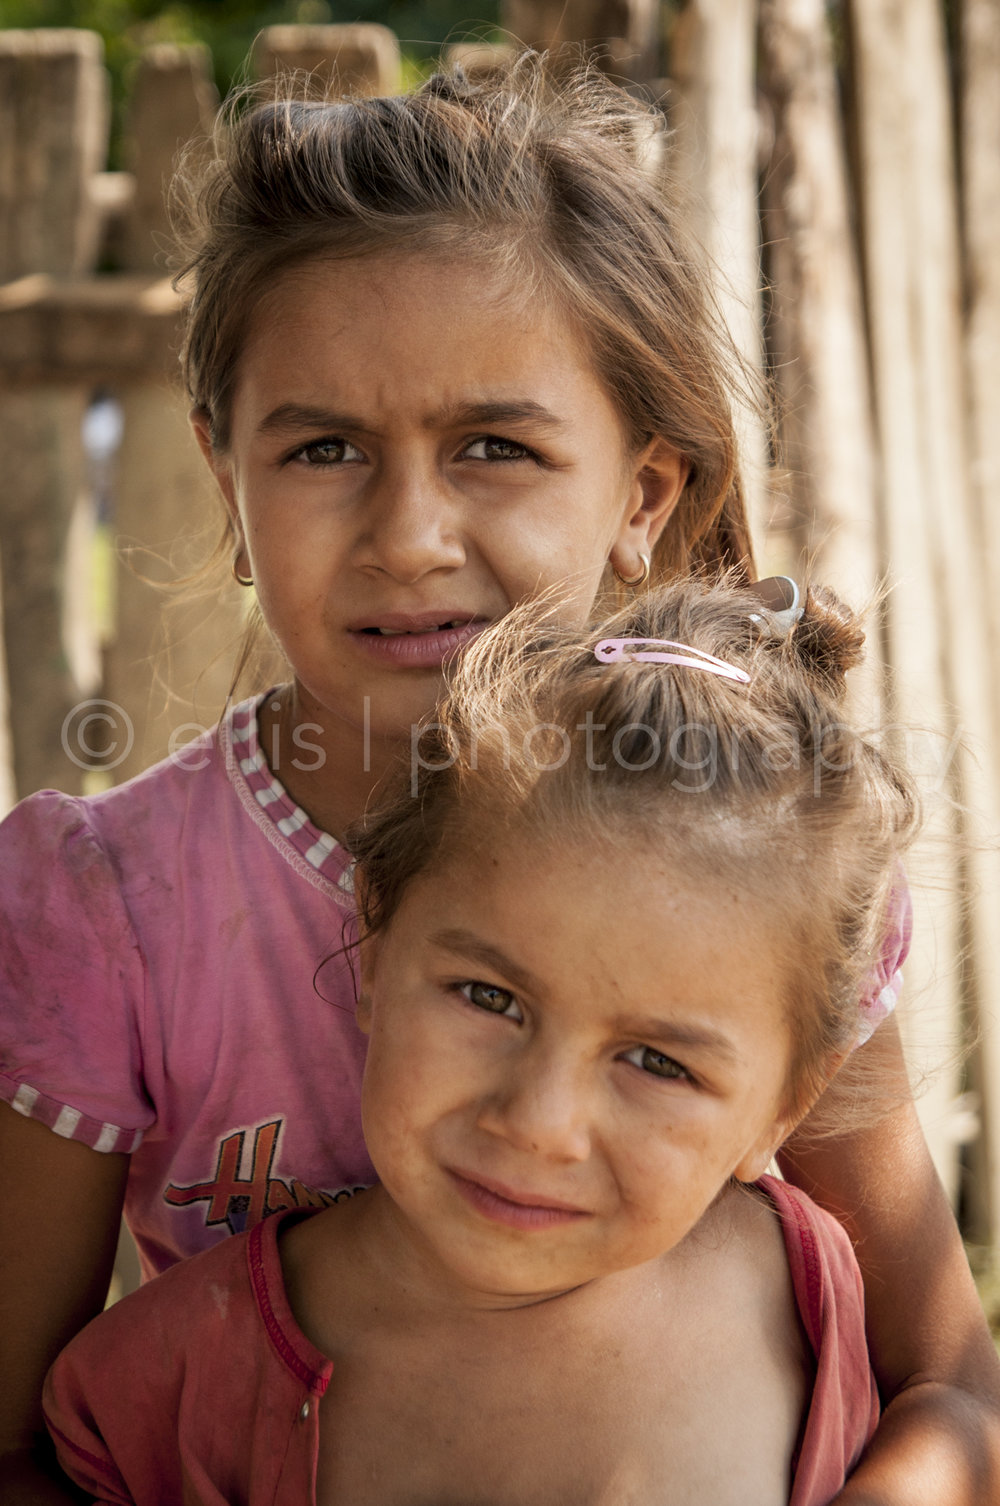 Two young gipsy sisters. Youngest sits on the lab of the older sister. Portraits of a Romanian Family. Ellis Photography - daily life photography